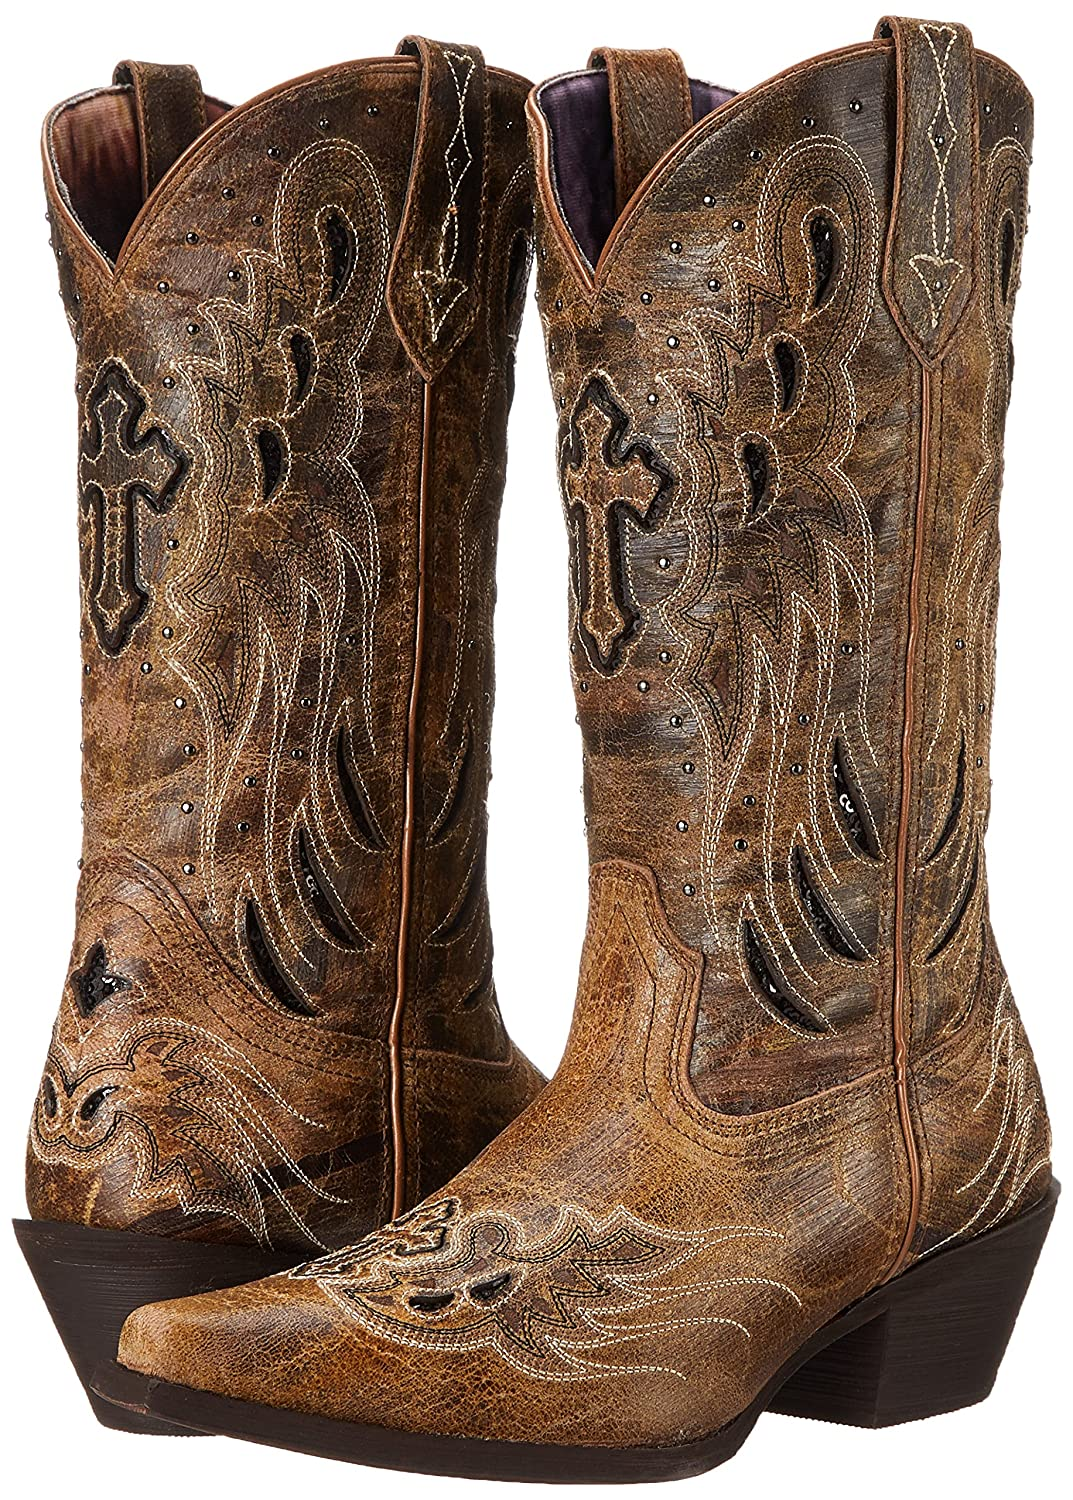 Laredo Women's B00QMVMMBG Crosswing Western Boot B00QMVMMBG Women's 9 B(M) US|Taupe/Black 01b3a7